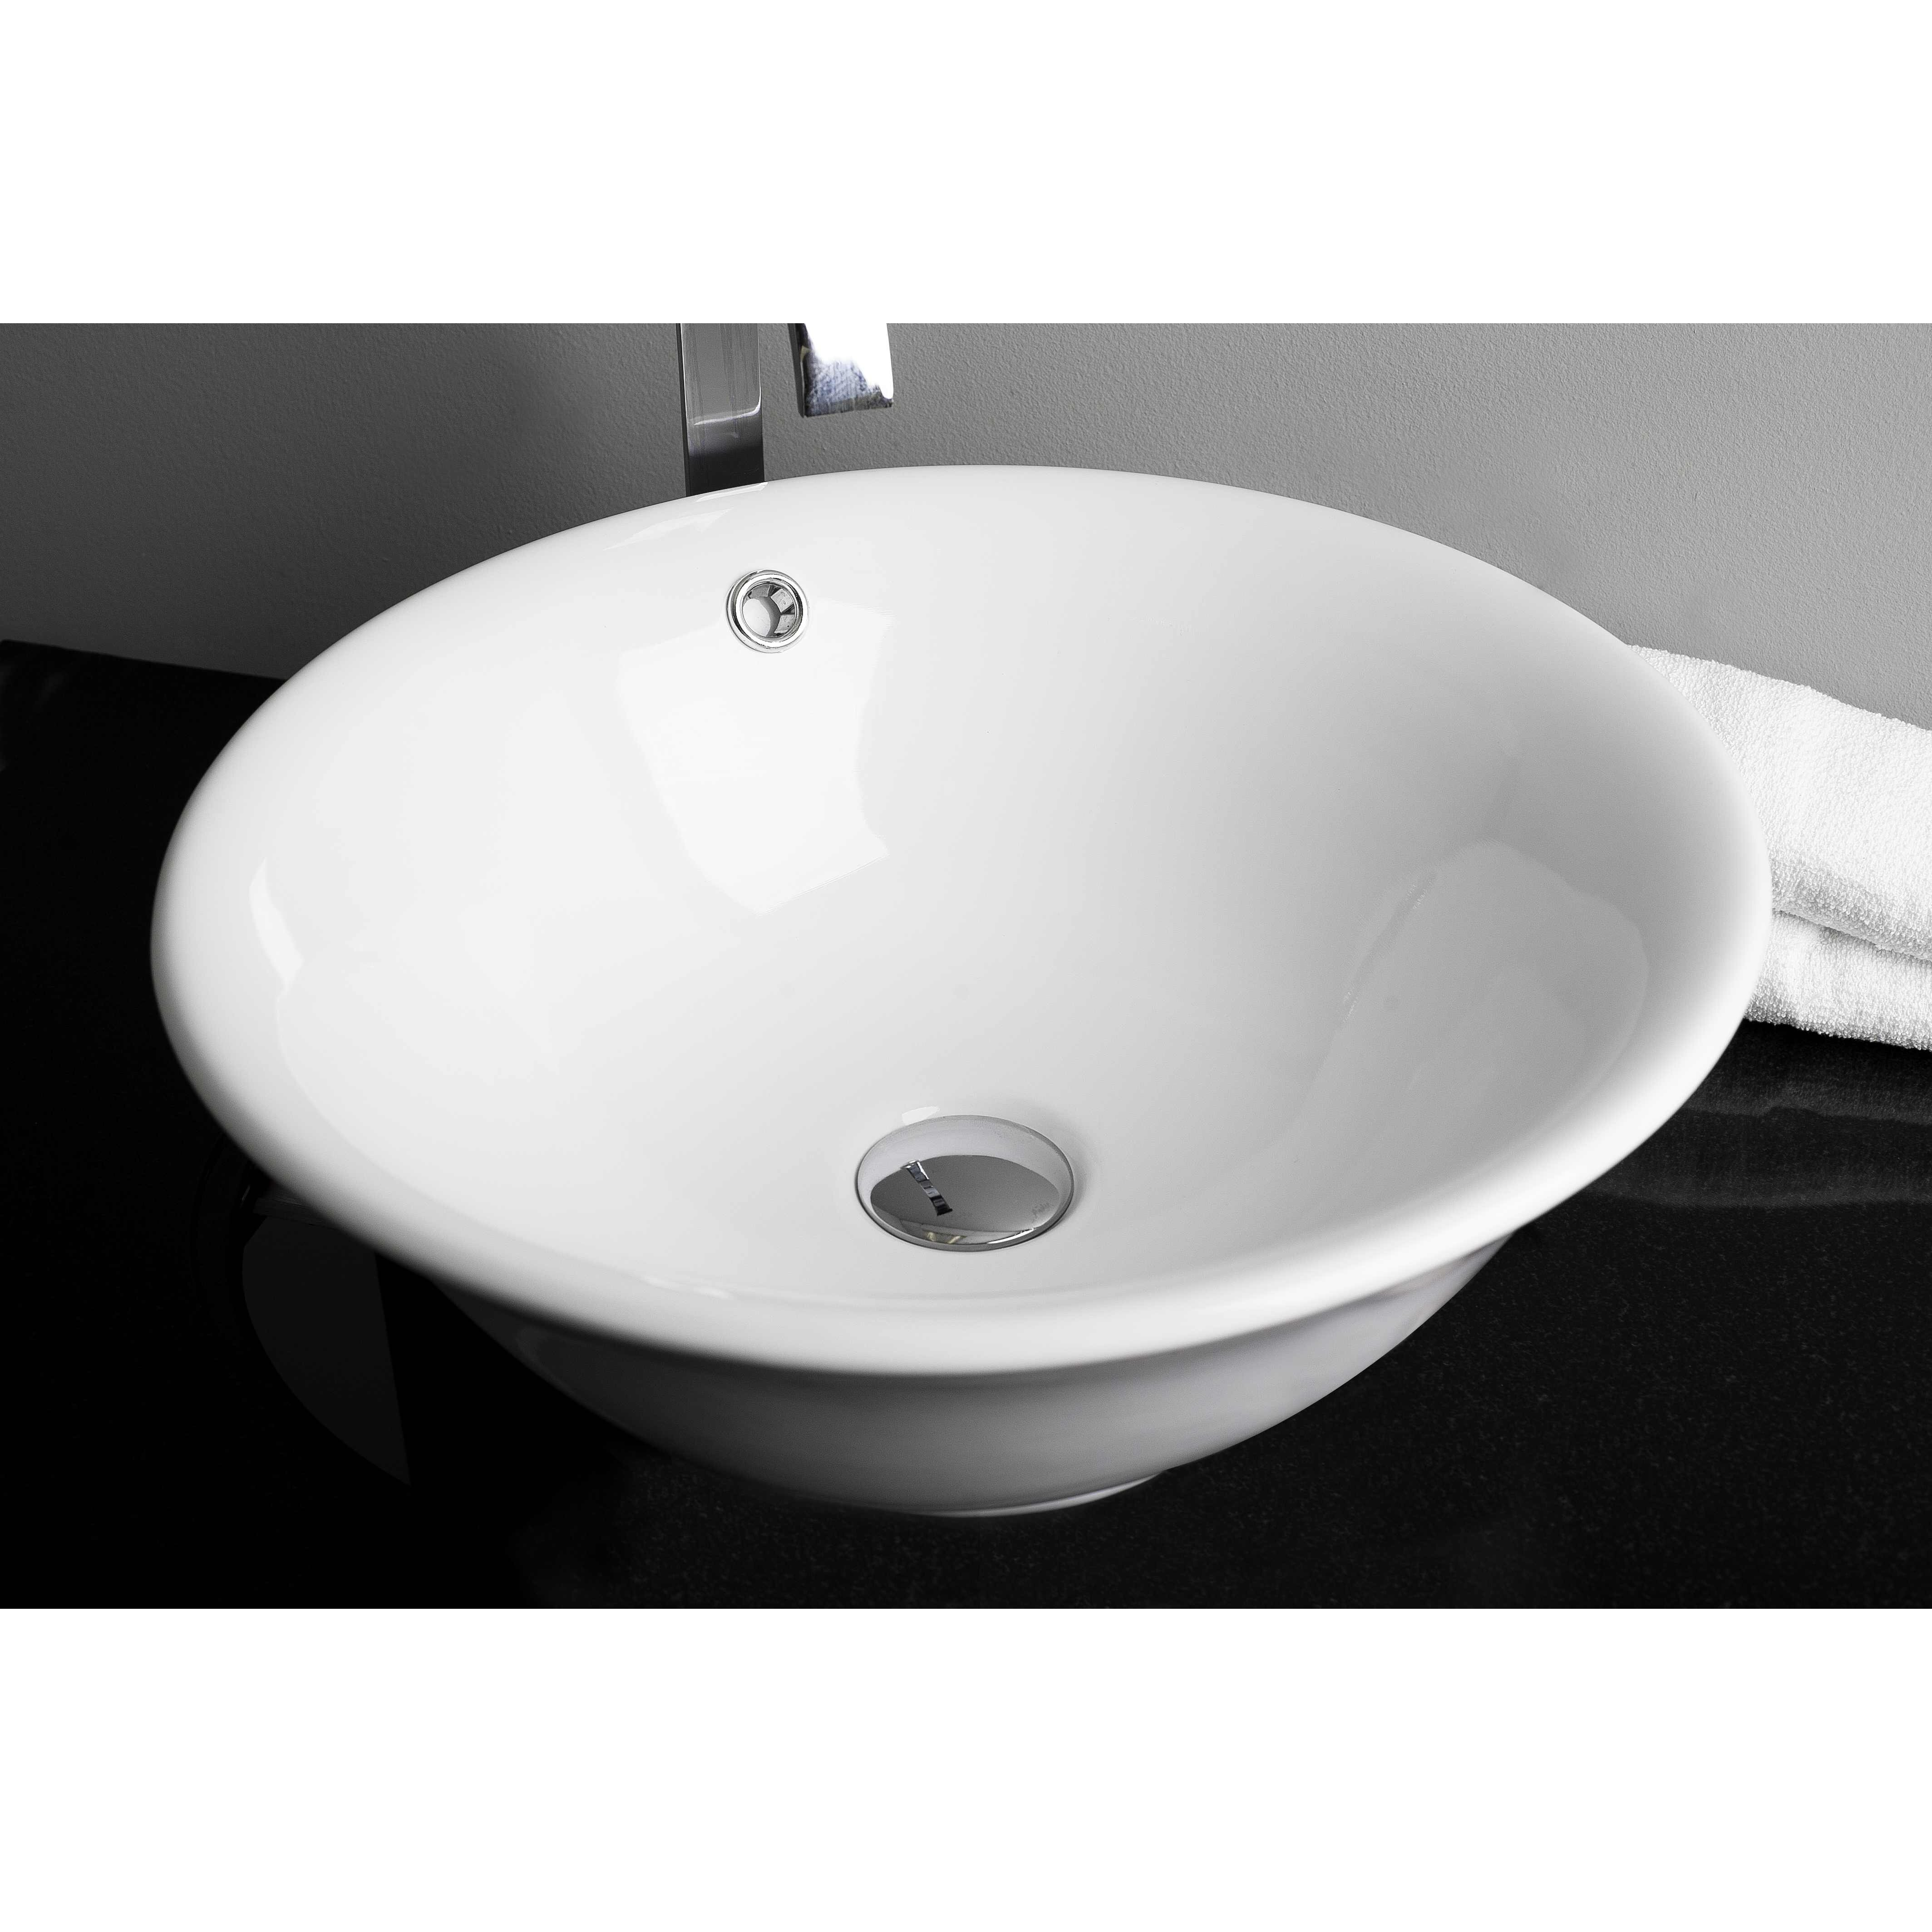 American imaginations above counter round vessel bathroom sink reviews wayfair for Above counter bathroom sinks glass